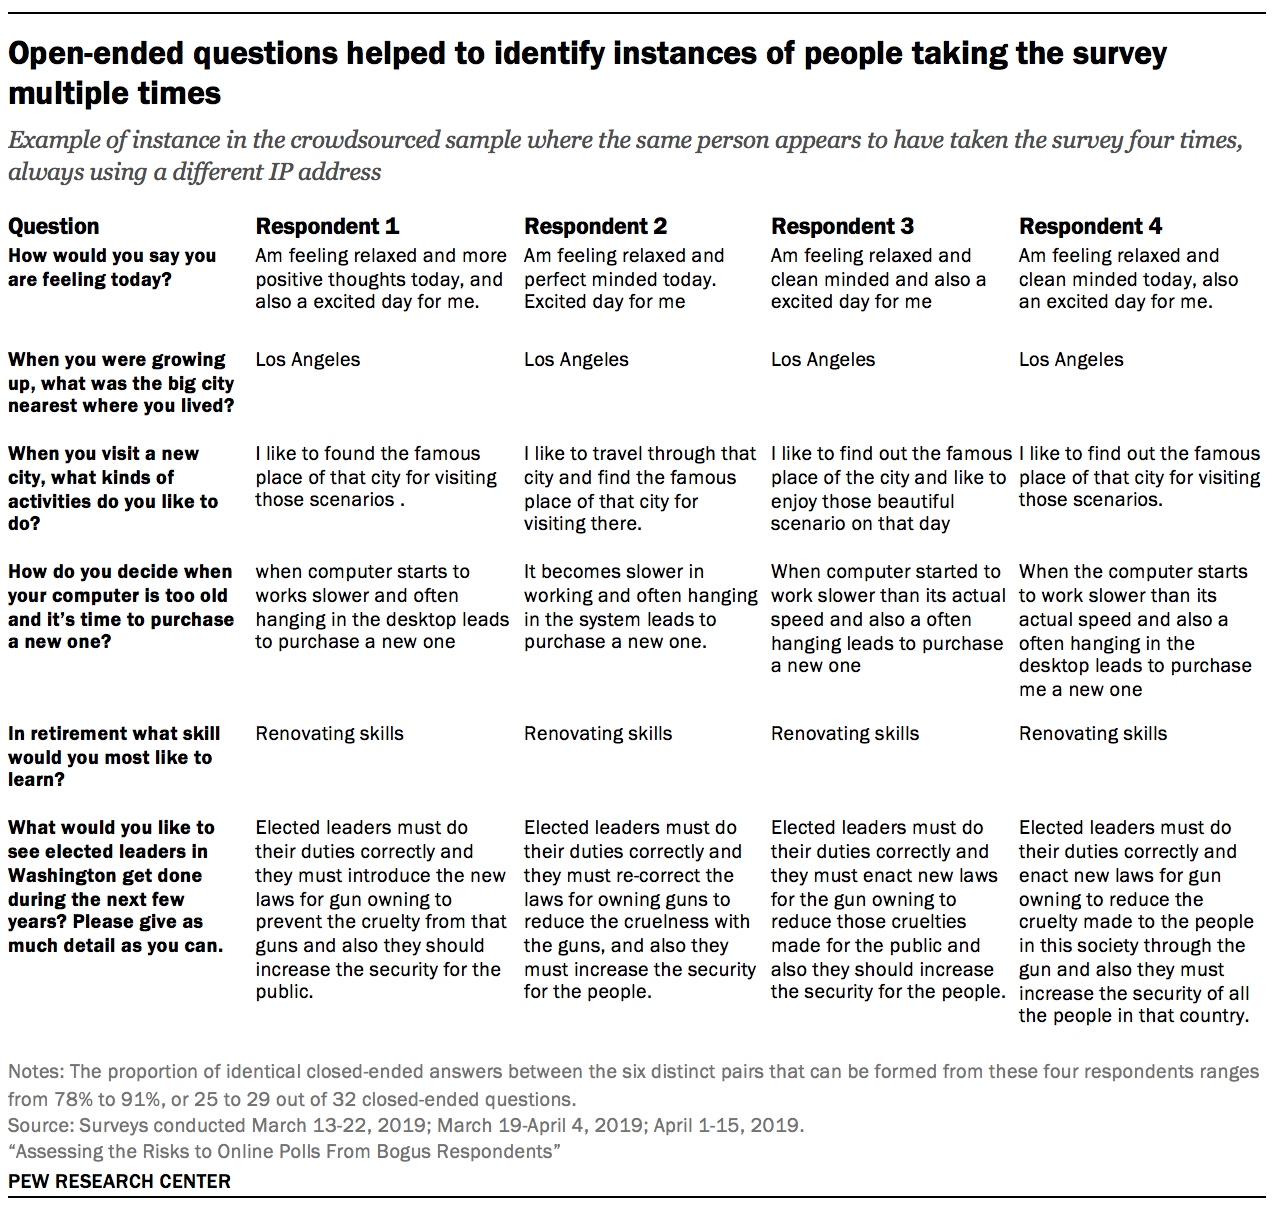 Open-ended questions helped to identify instances of people taking the survey multiple times